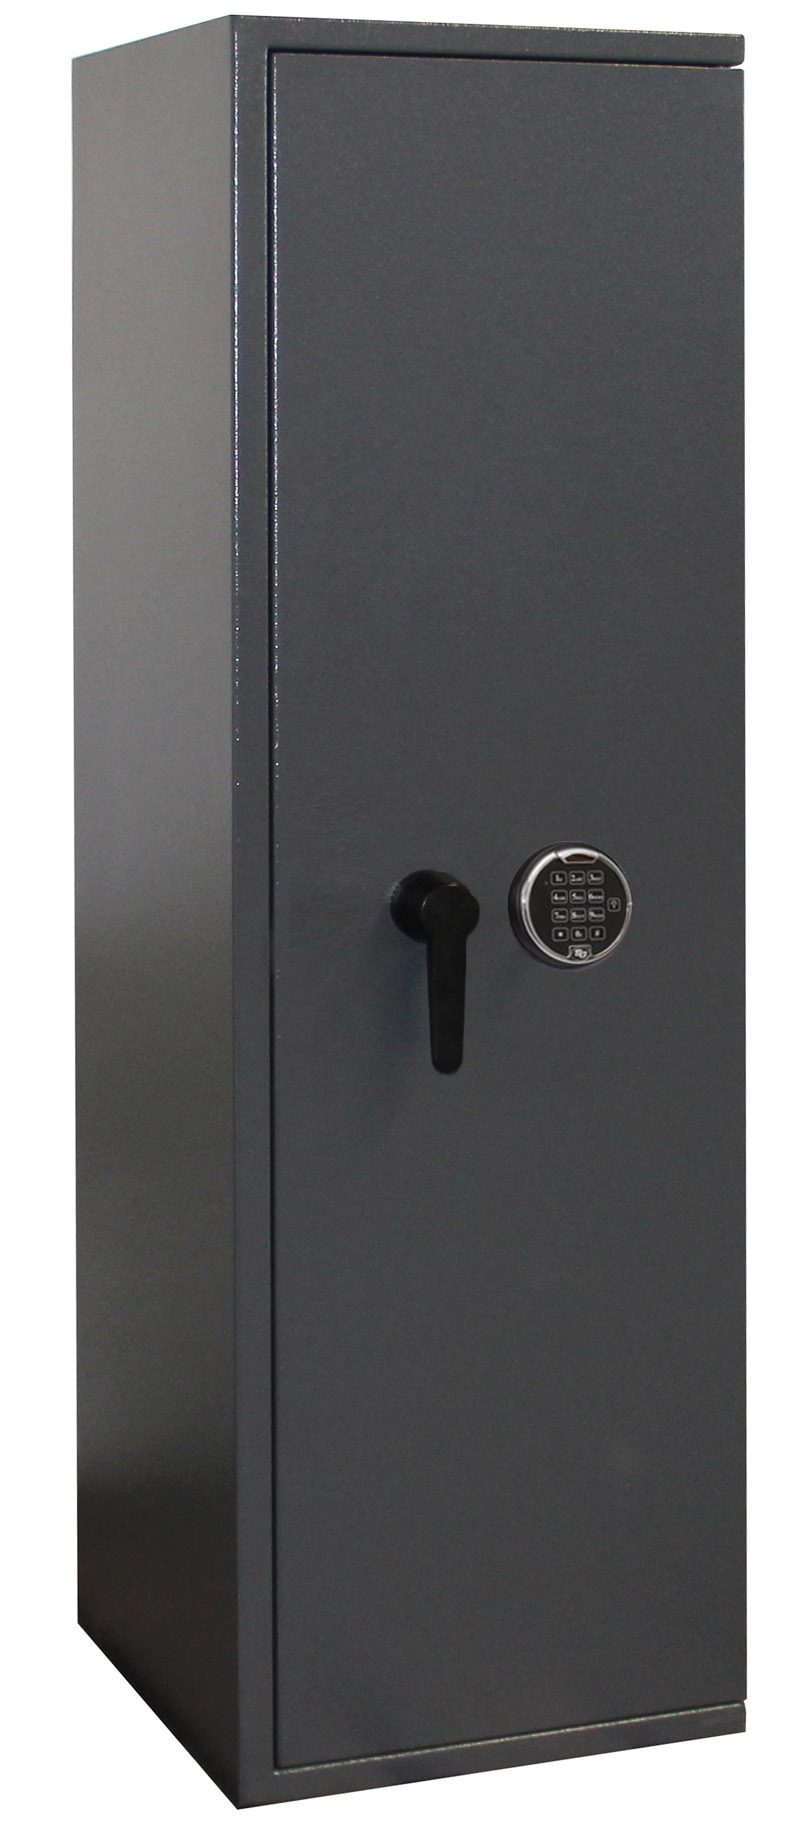 btm tresor widerstandsgrad 1 en 1143 1 security safe 1 3 125. Black Bedroom Furniture Sets. Home Design Ideas